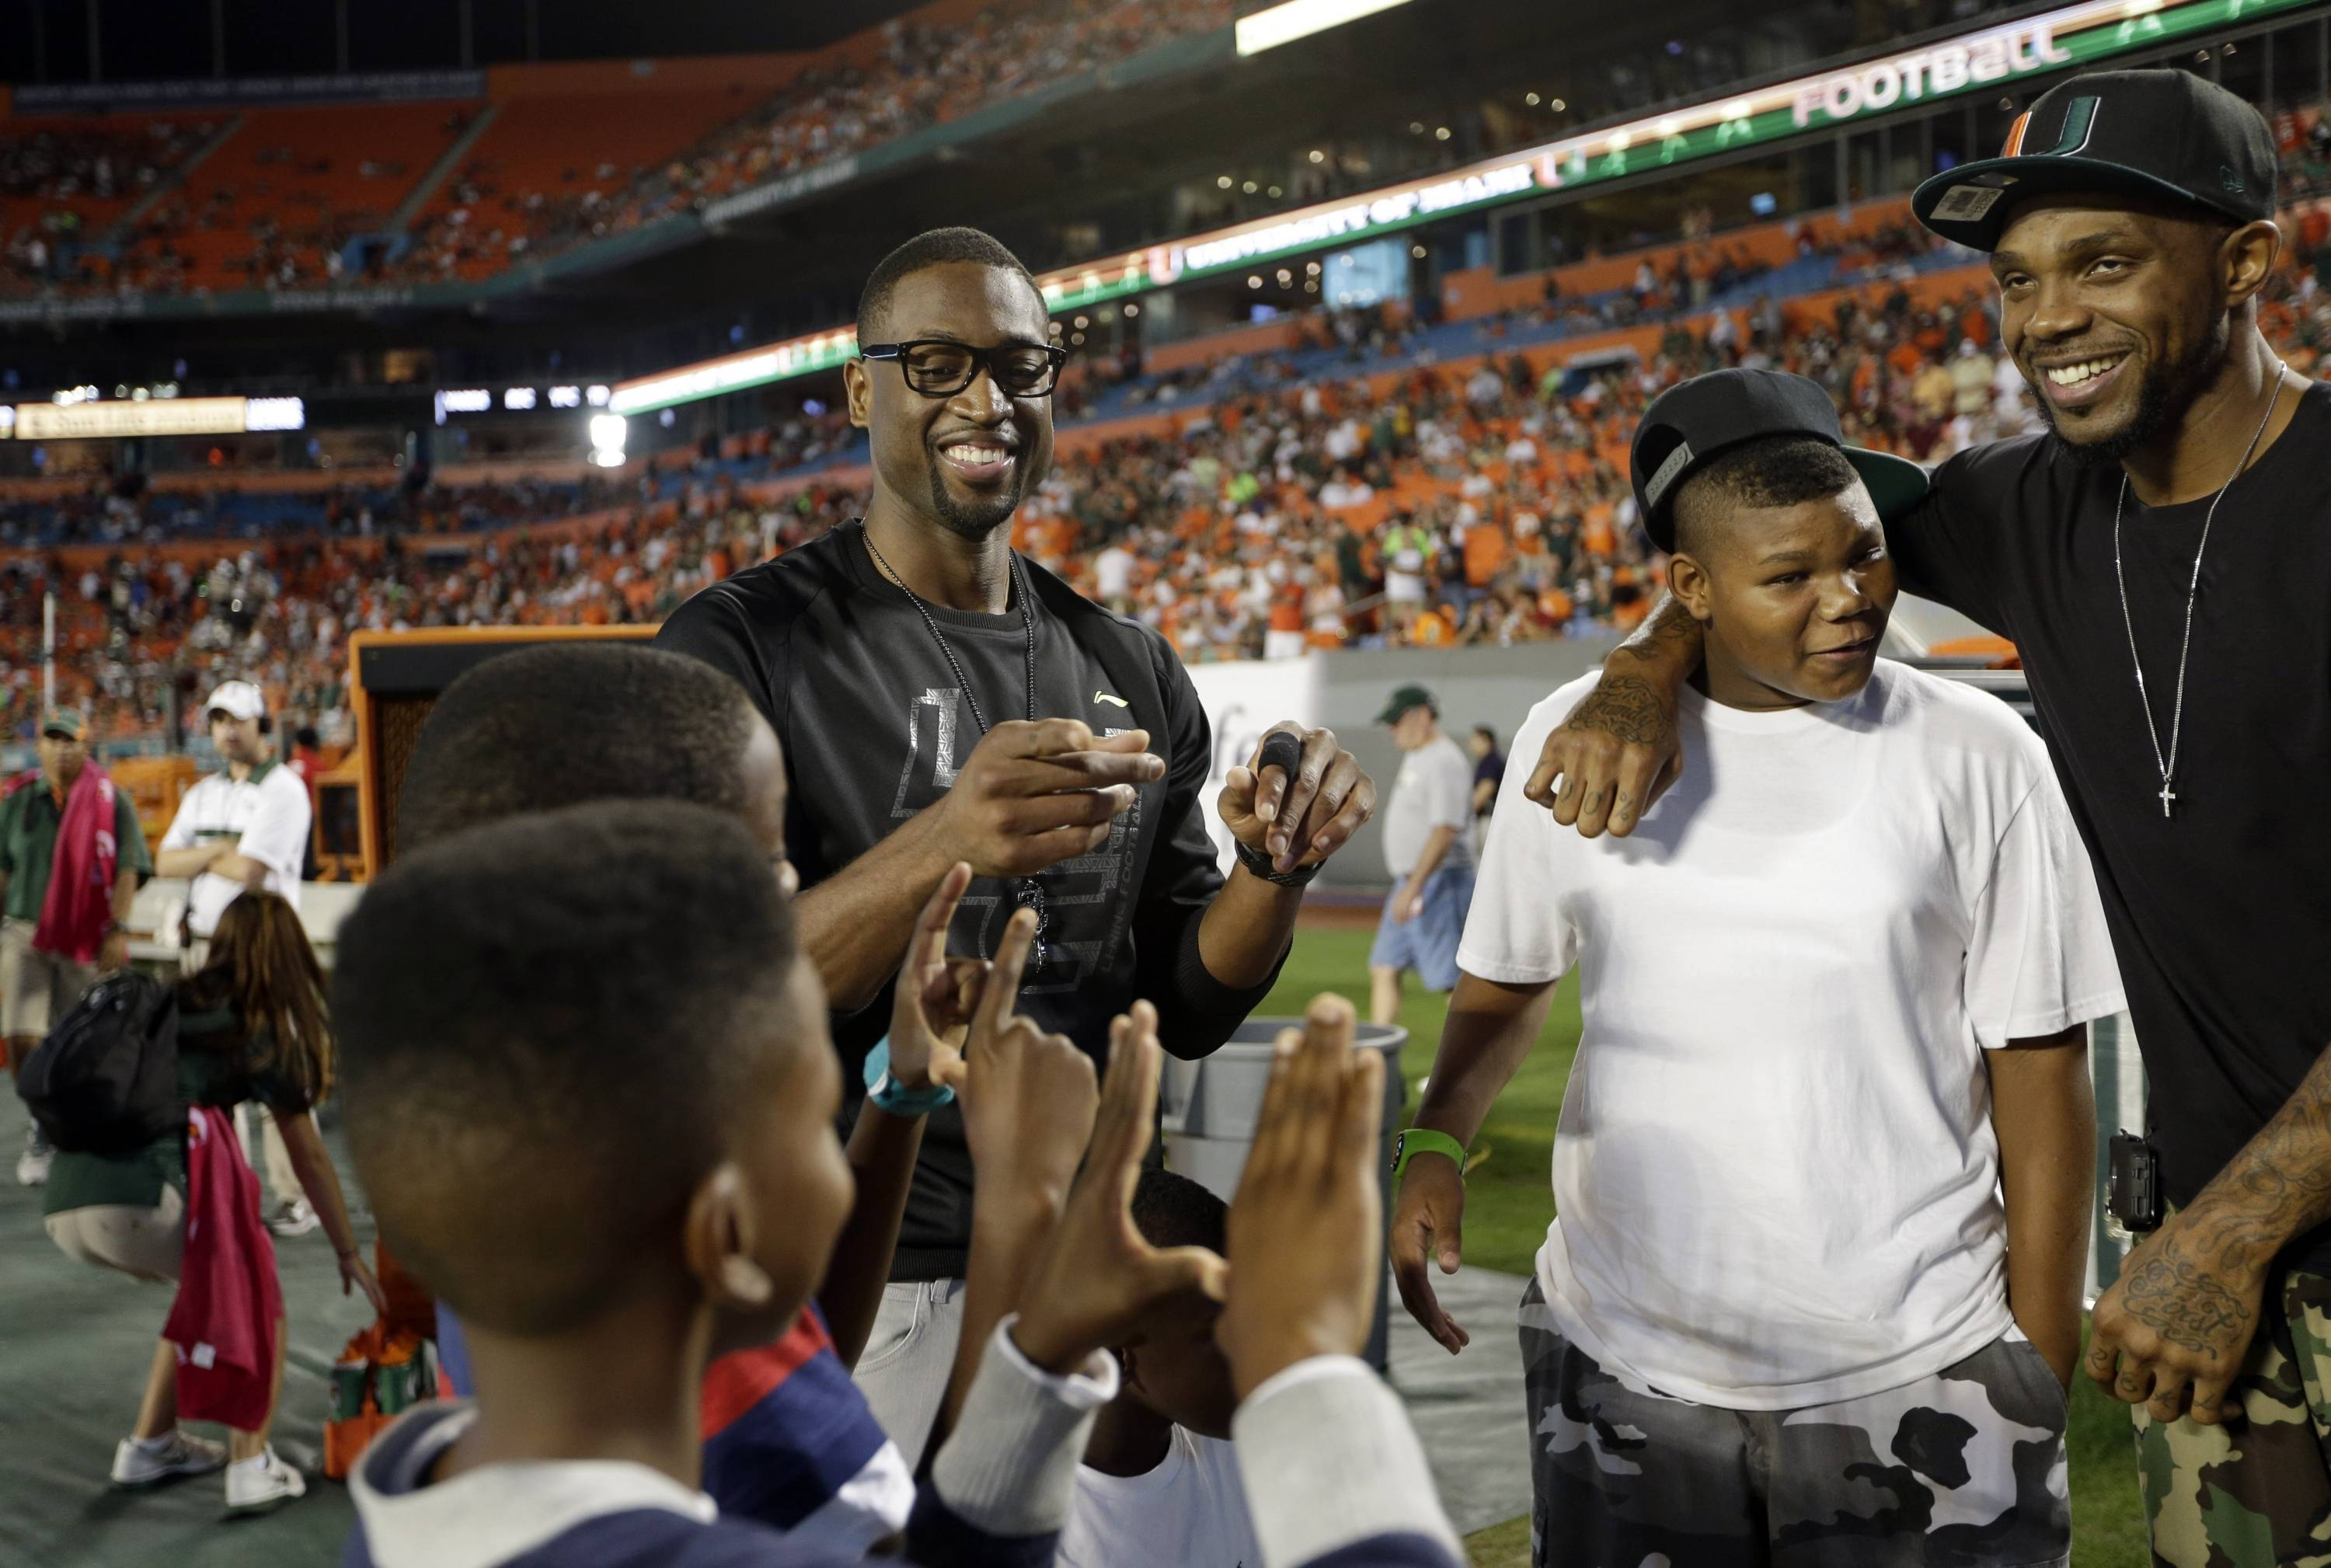 Miami Heat's Dwyane Wade, center, and Udonis Haslem, right, stand on the sideline before an NCAA college football game against Florida State, Saturday, Oct. 20, 2012, in Miami. (AP Photo/Lynne Sladky)